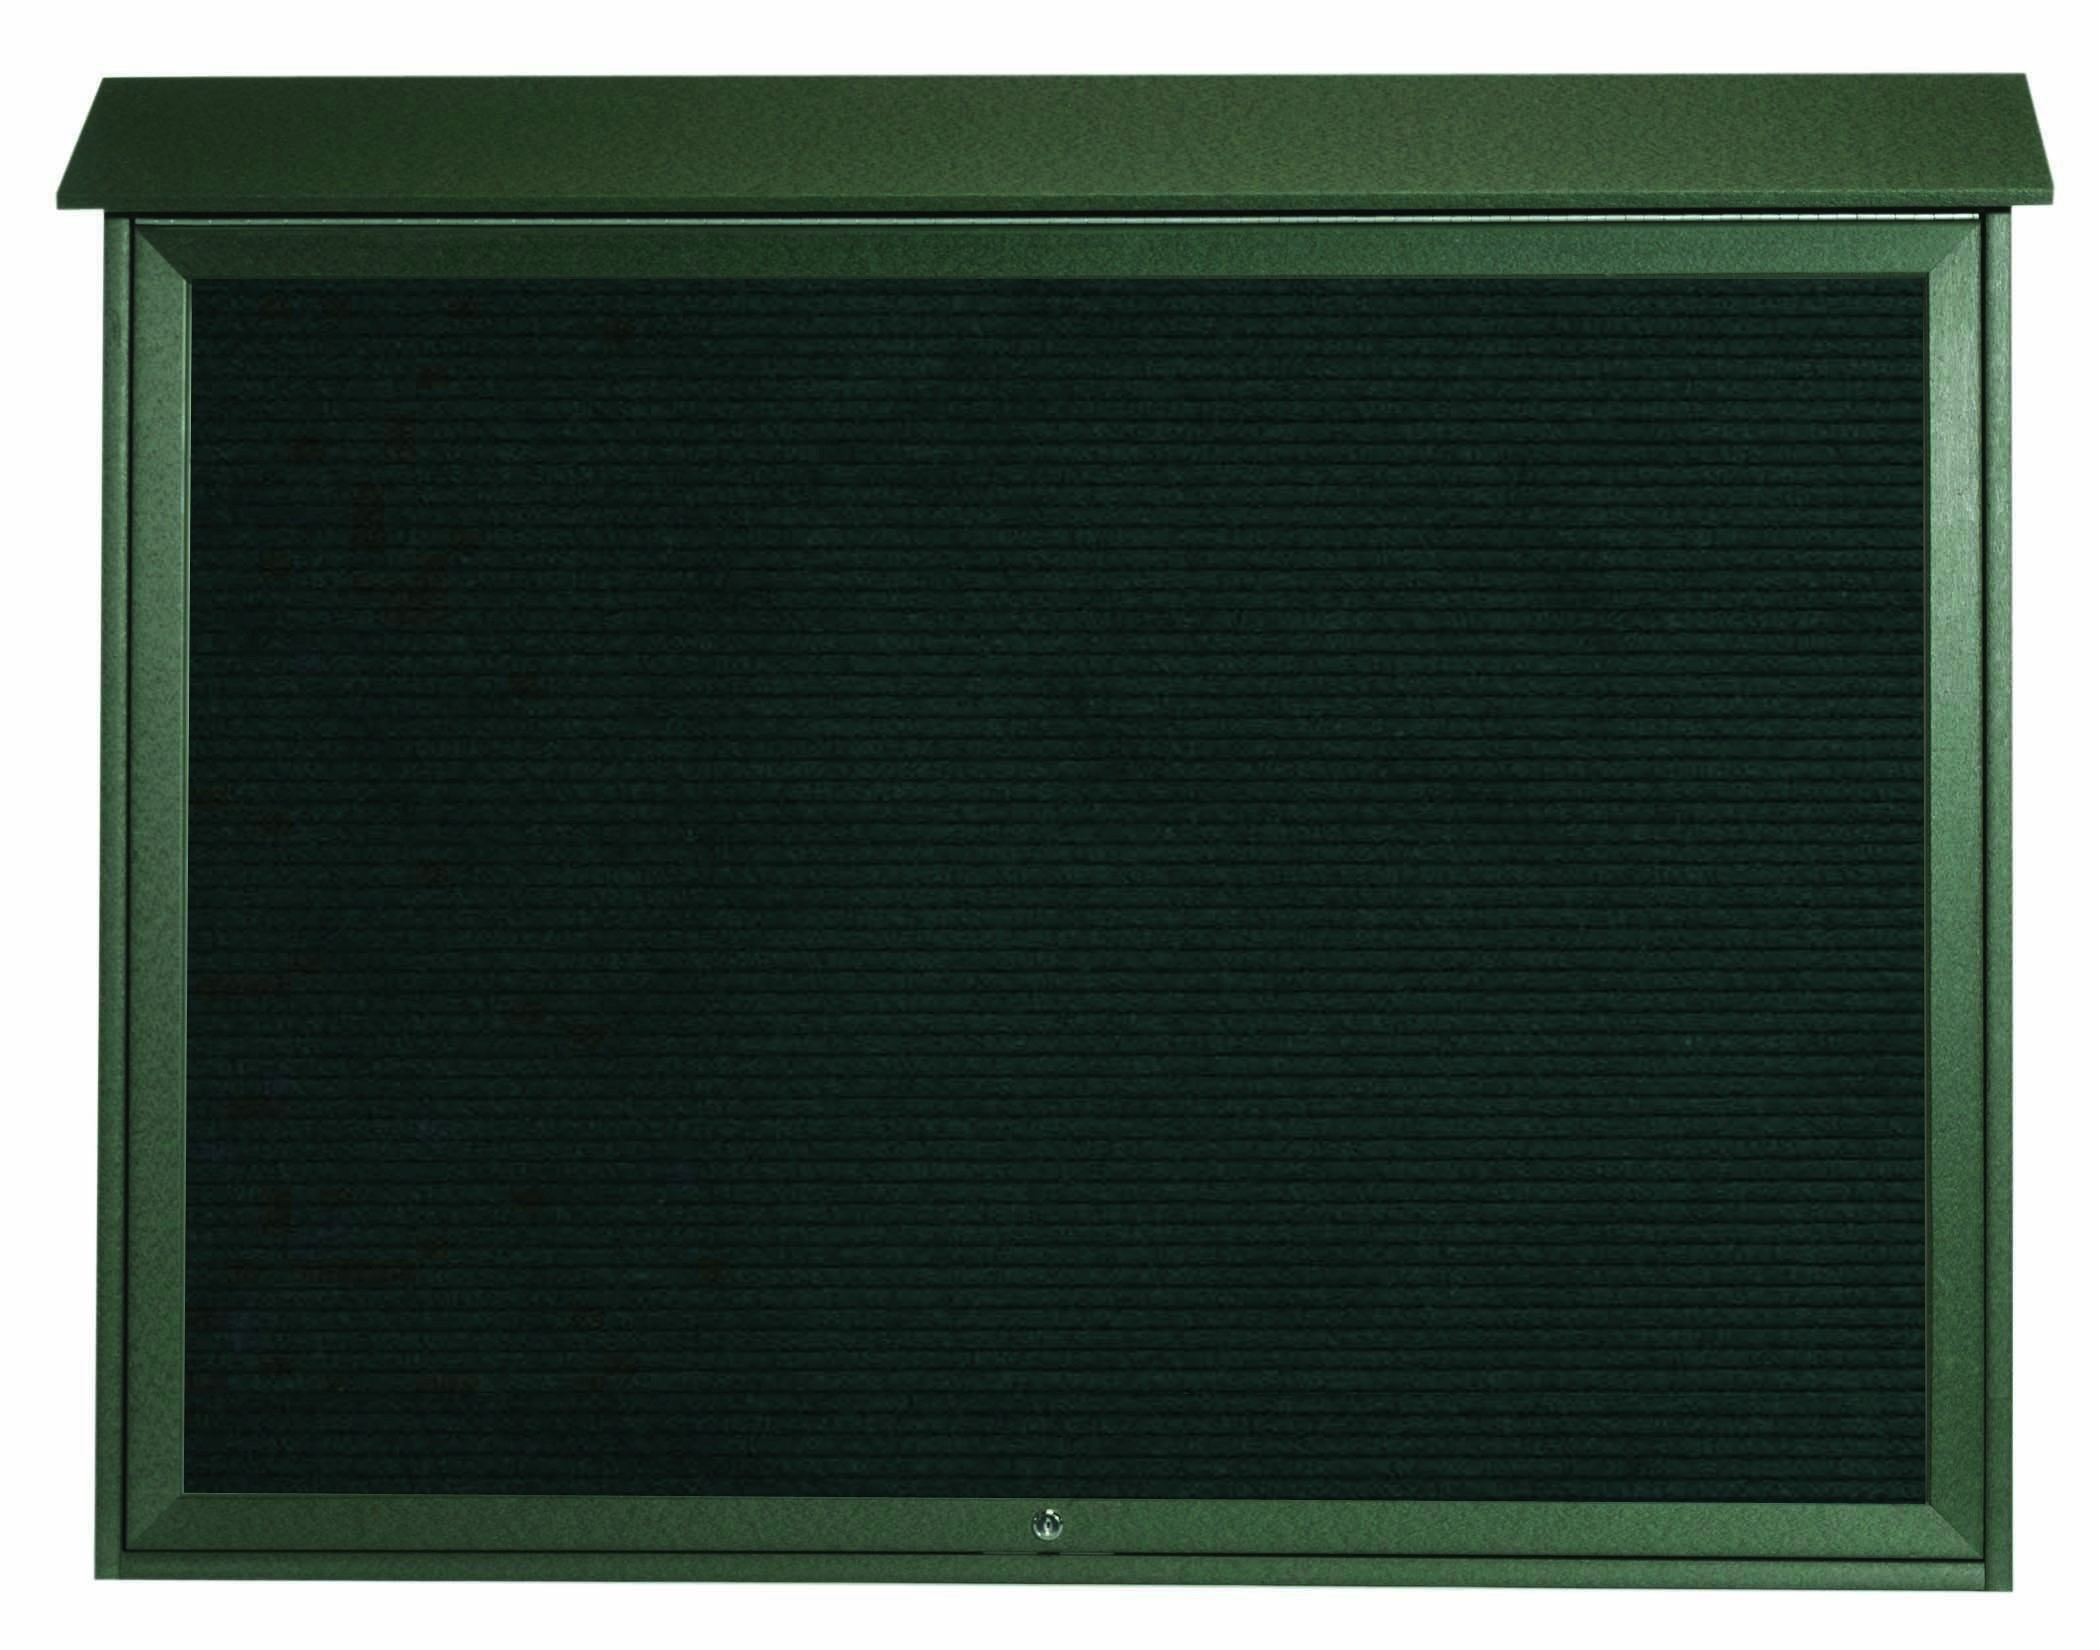 "Aarco Products PLD4052TL-4 Green Top Hinged Single Door Plastic Lumber Message Center with Letter Board, 40""H x 52""W"